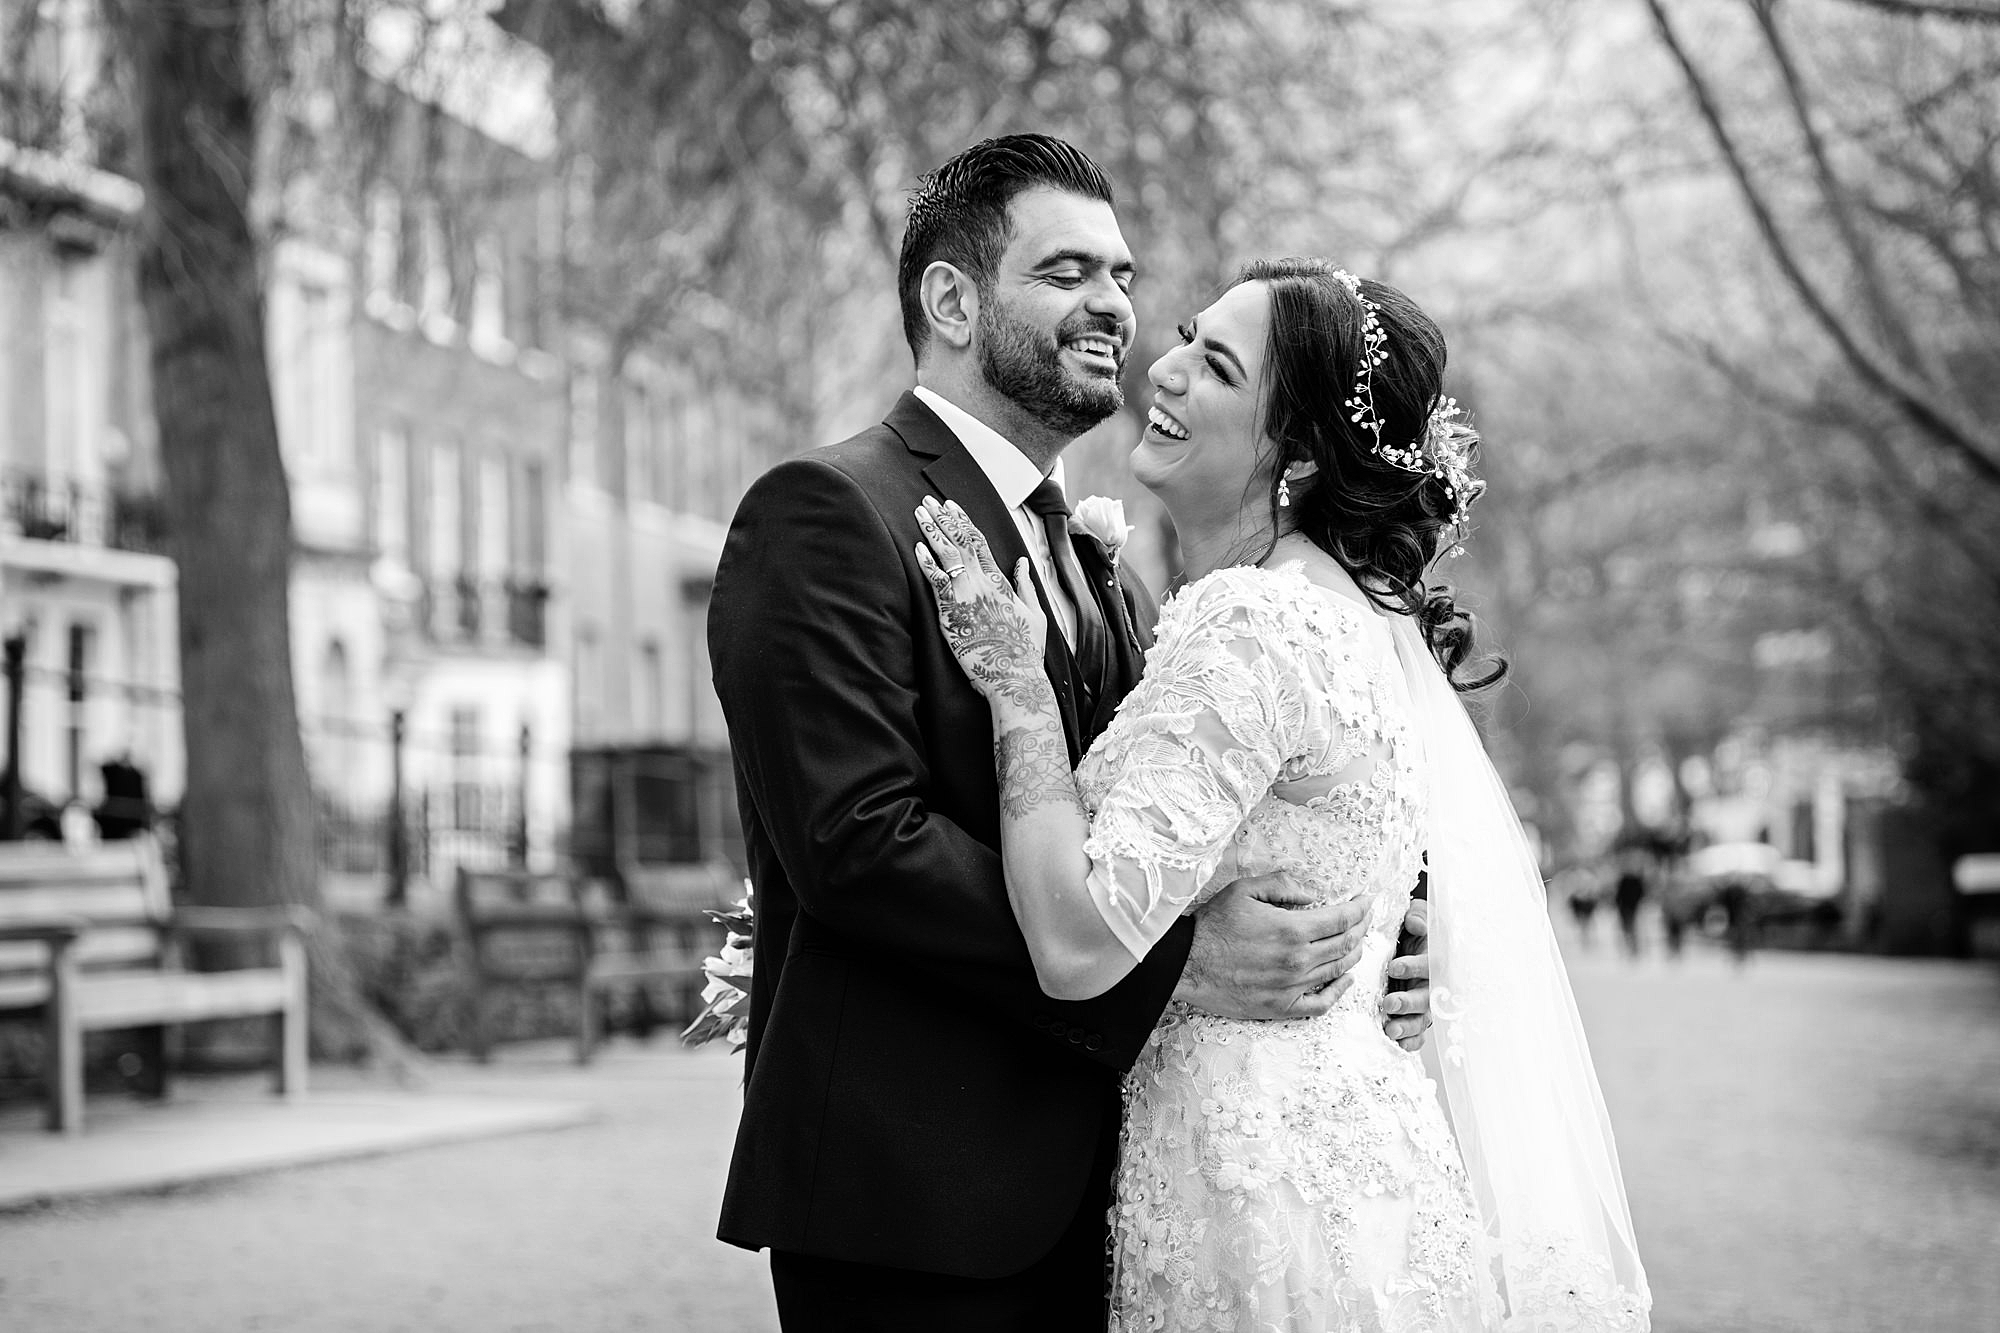 Richmond Hill Hotel wedding photography fun portrait of bride and groom laughing together